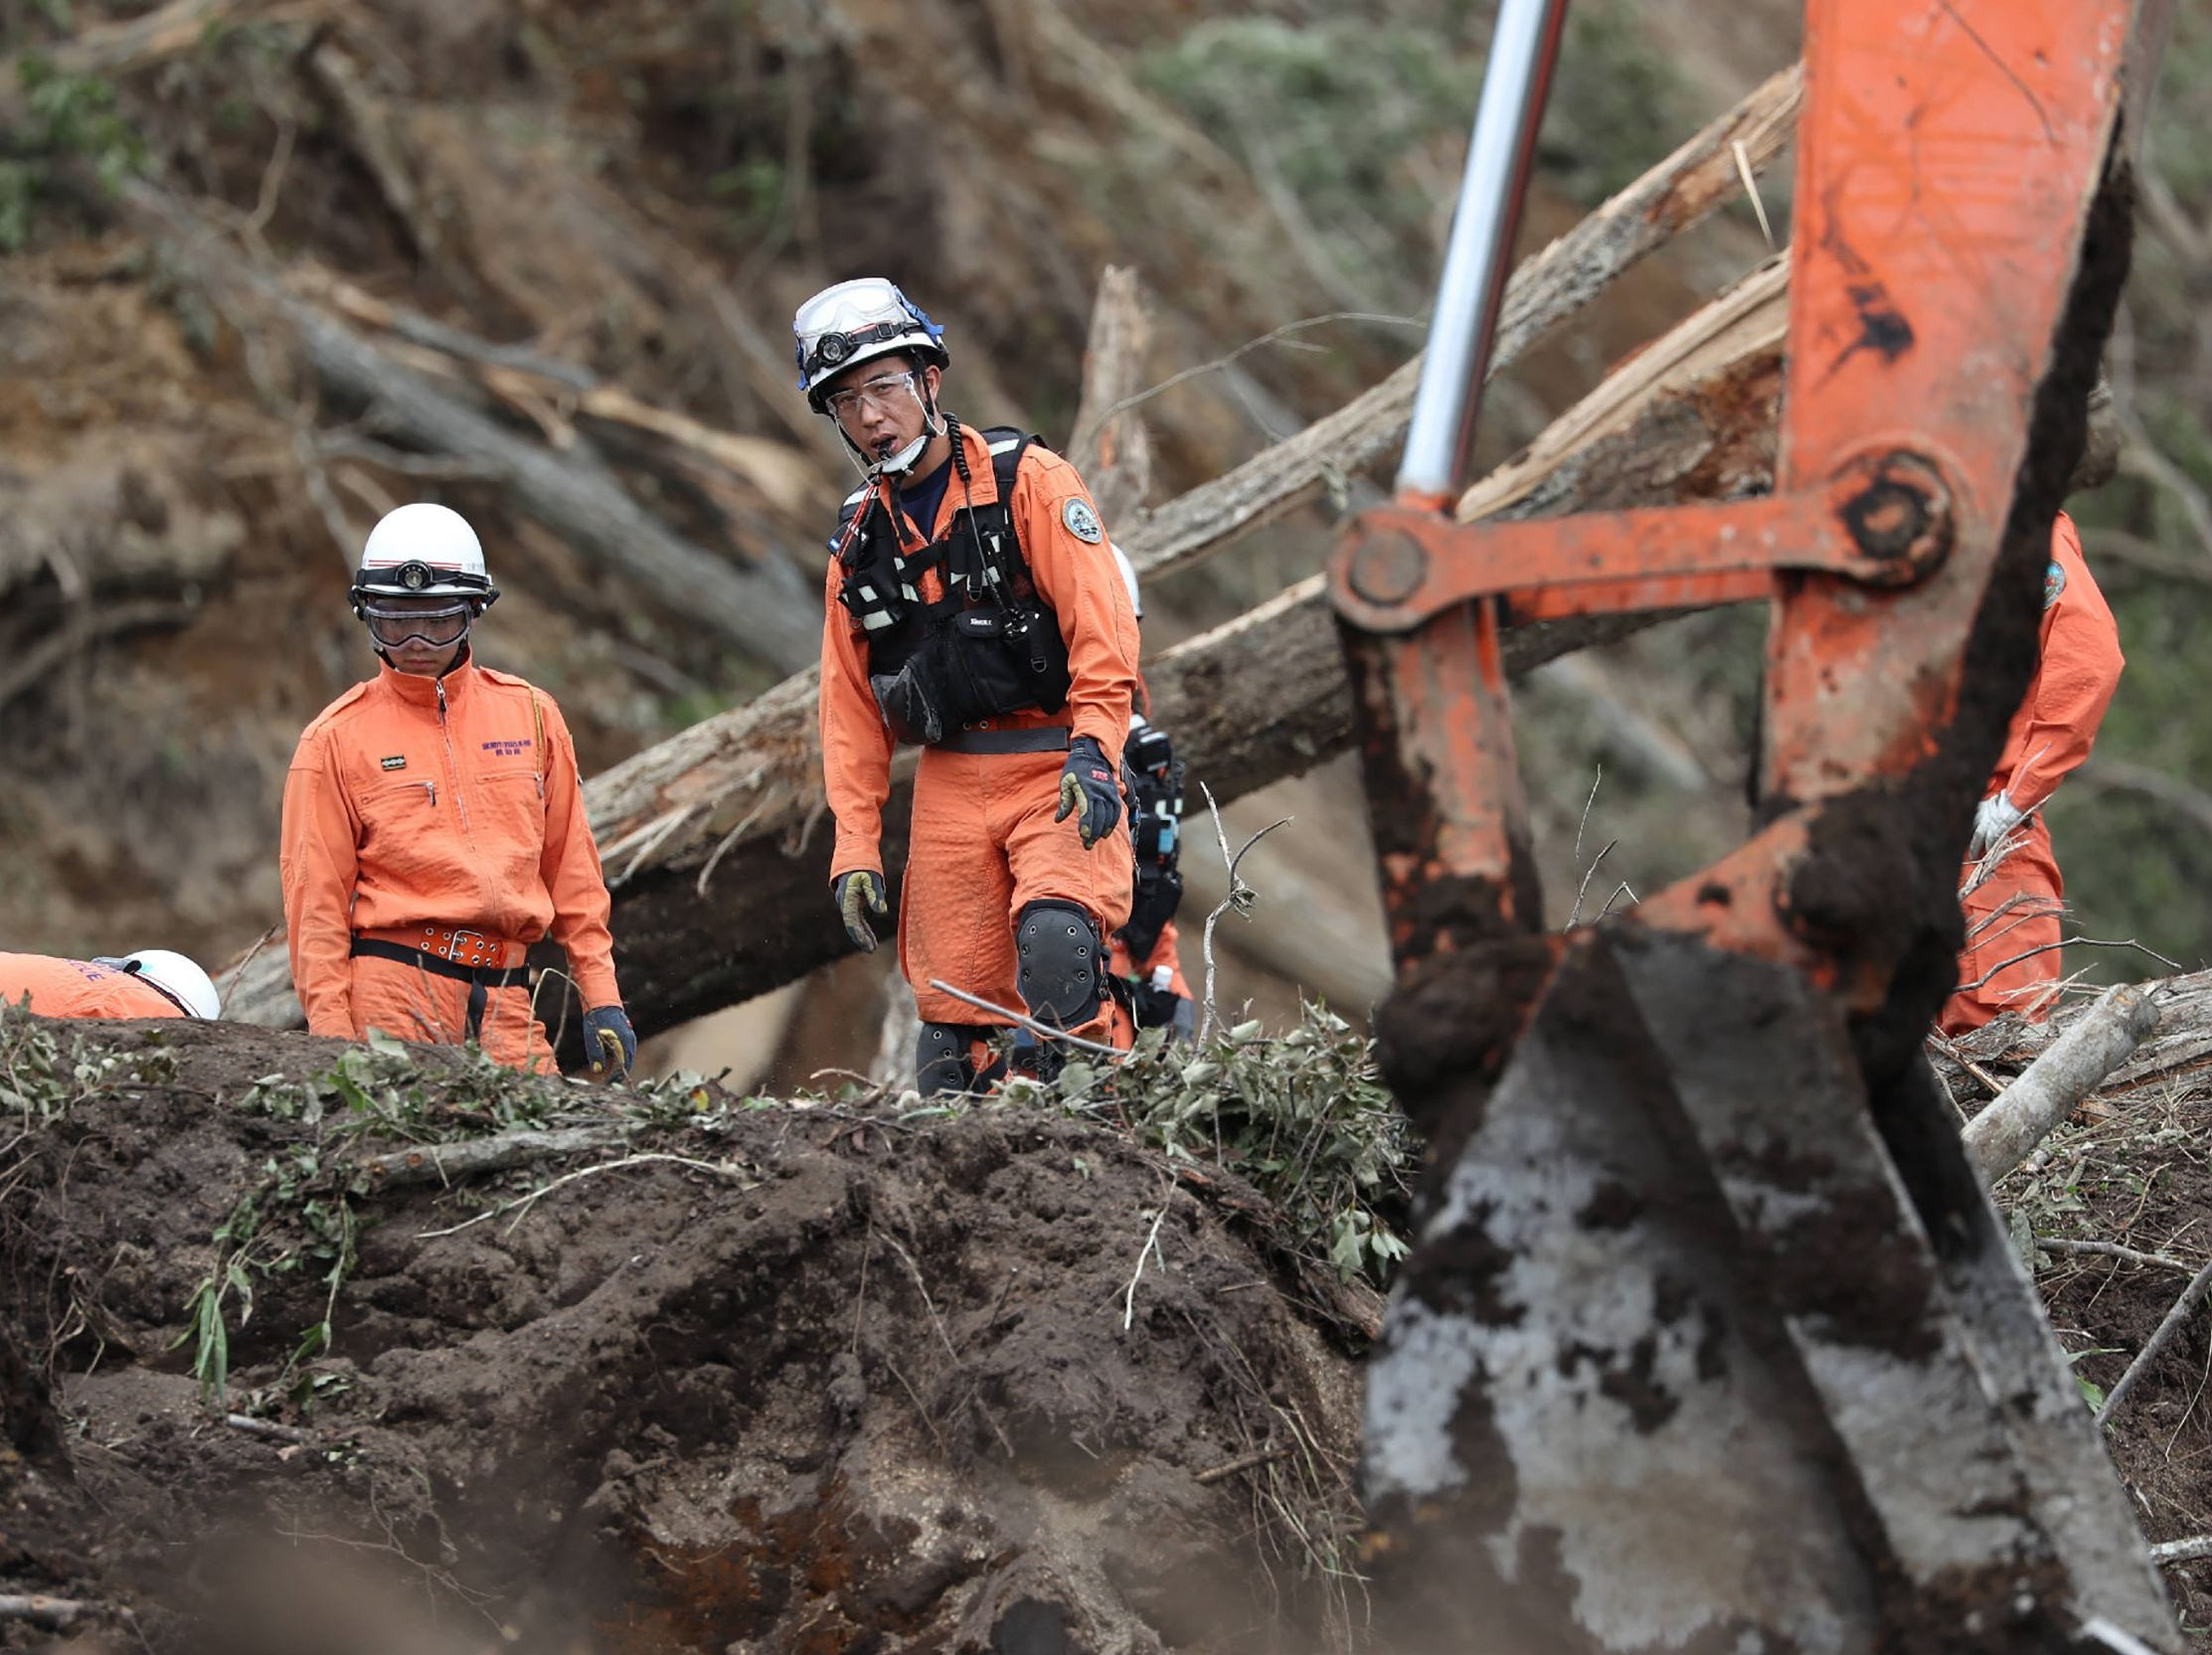 Rescue teams from fire fighter department search for missing people in Astuma on Sept. 8, 2018 after a 6.6-magnitude earthquake hit the northern Japanese island of Hokkaido on September 6.